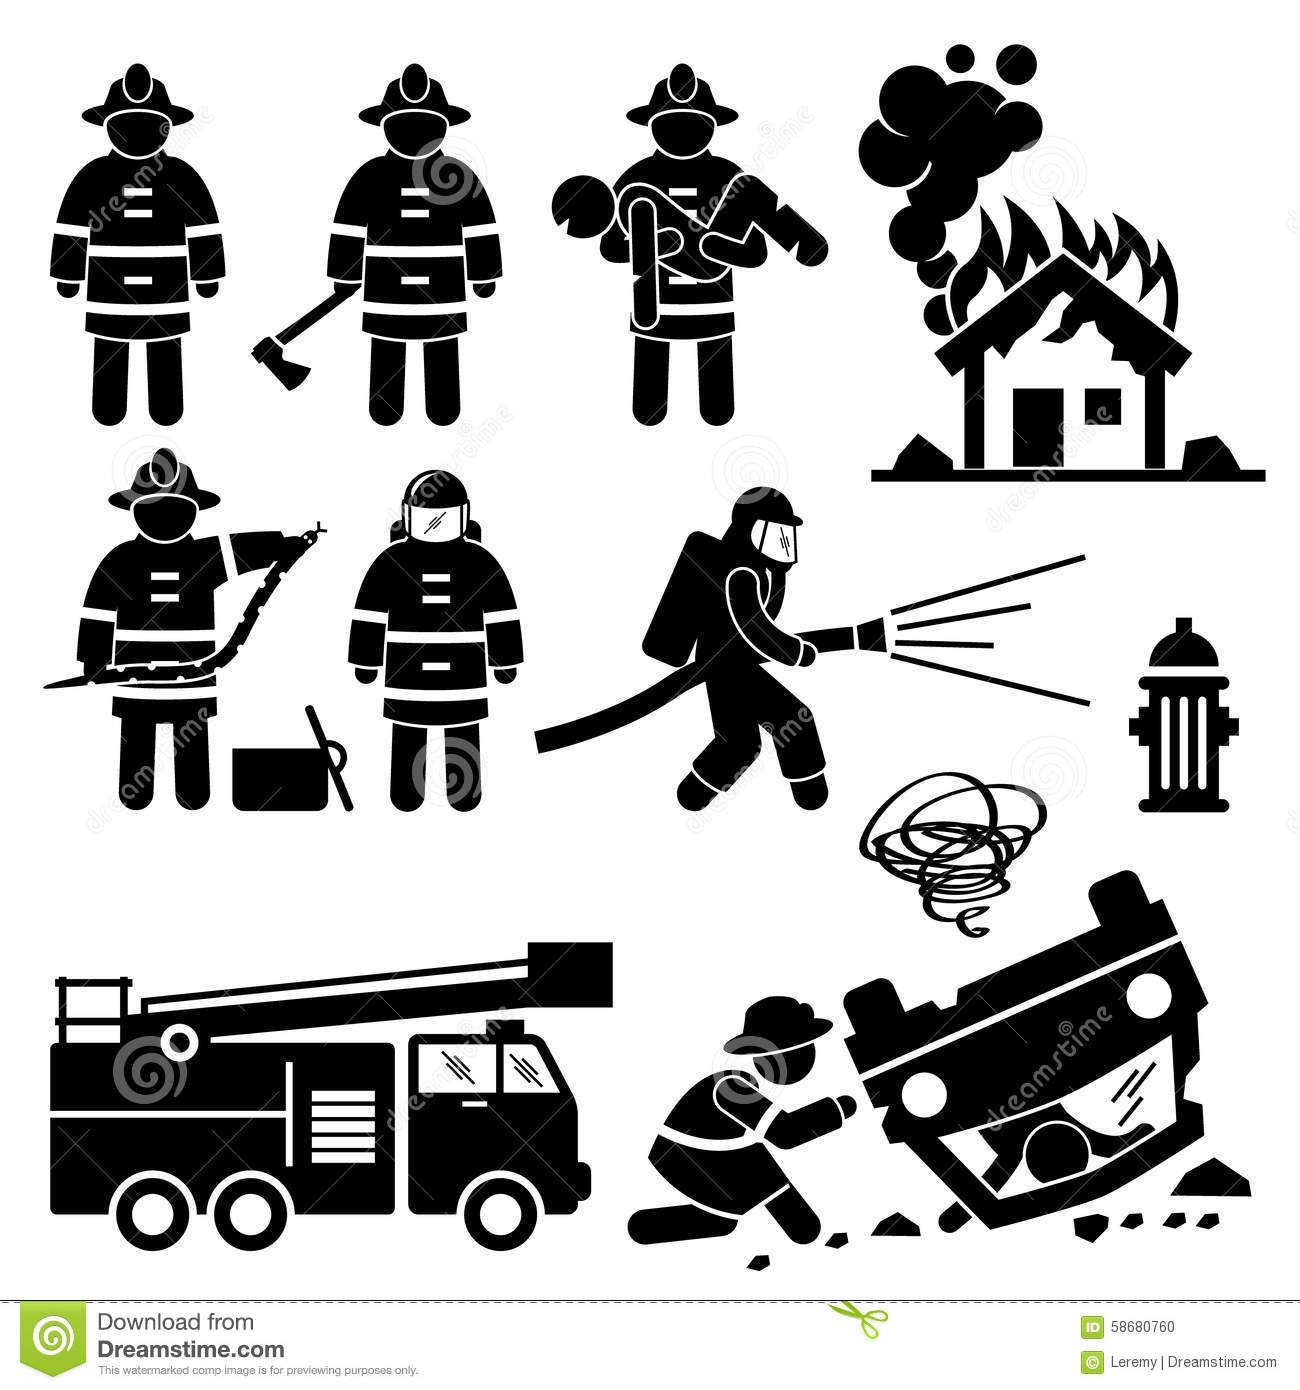 Firefighter Fireman Rescue Cliparts Stock Vector - Image: 58680760